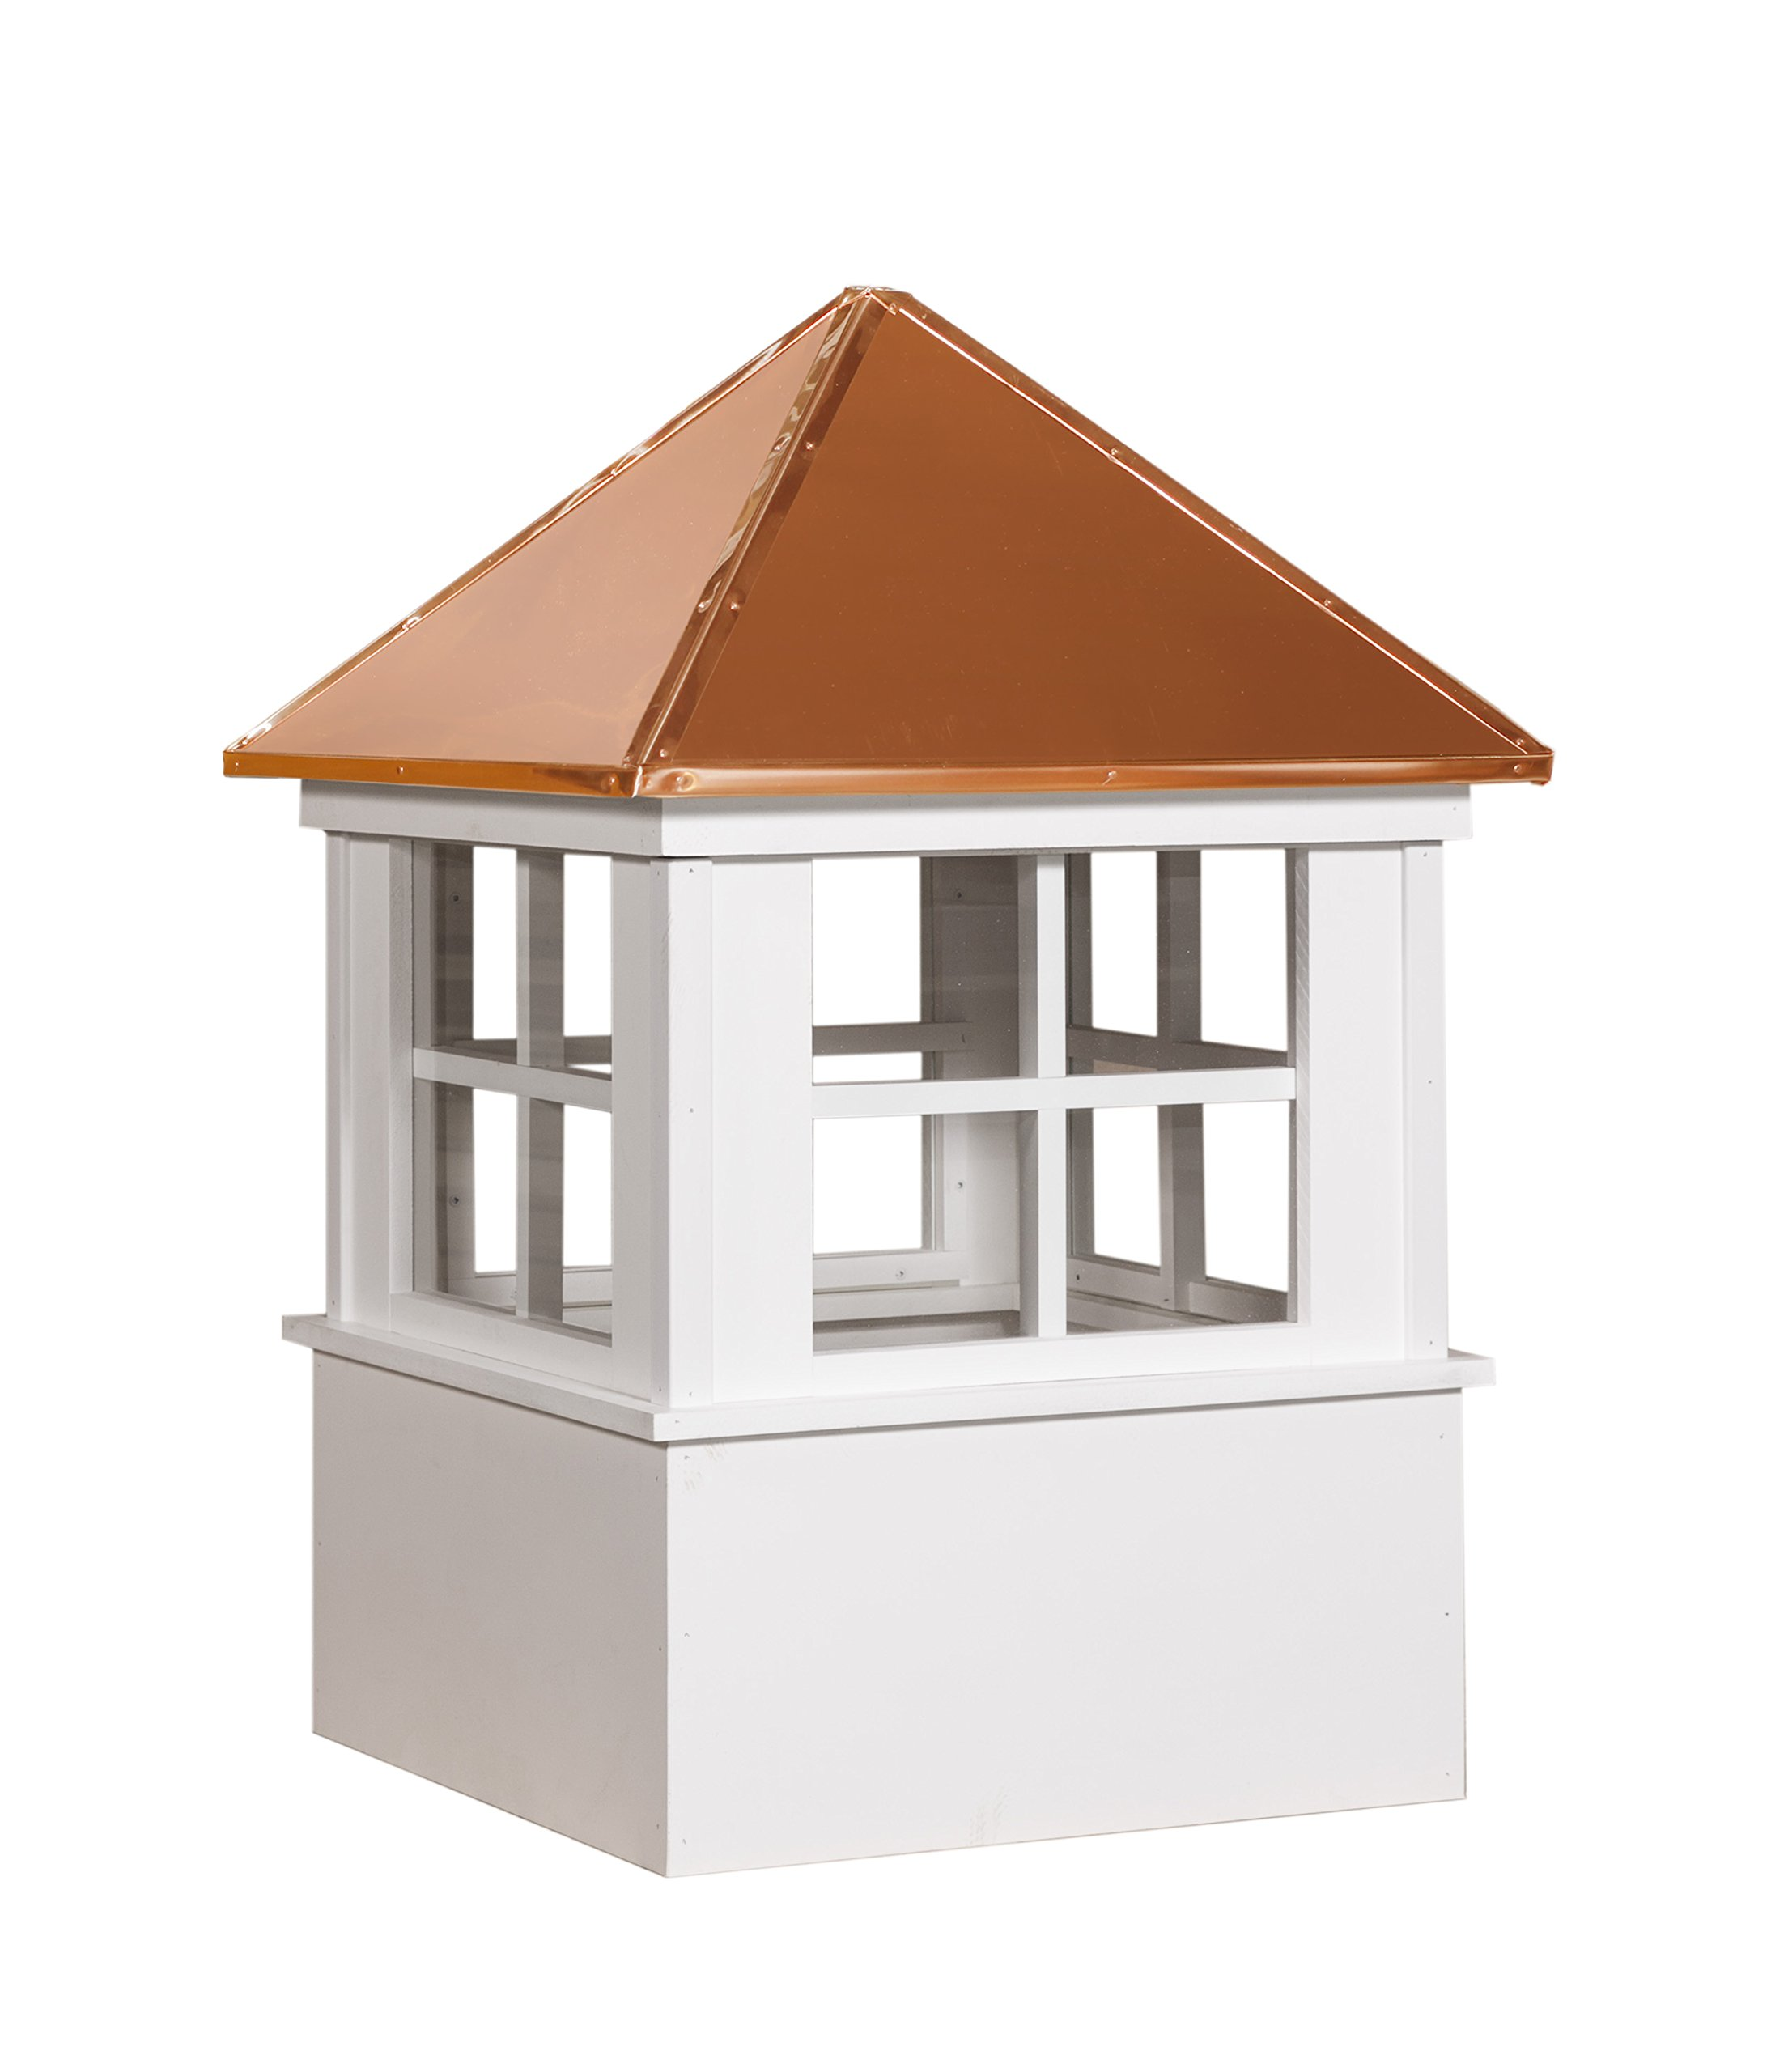 East Coast Weathervanes and Cupolas Vinyl Chester Cupola (Vinyl, 25 in square x 38 in tall)